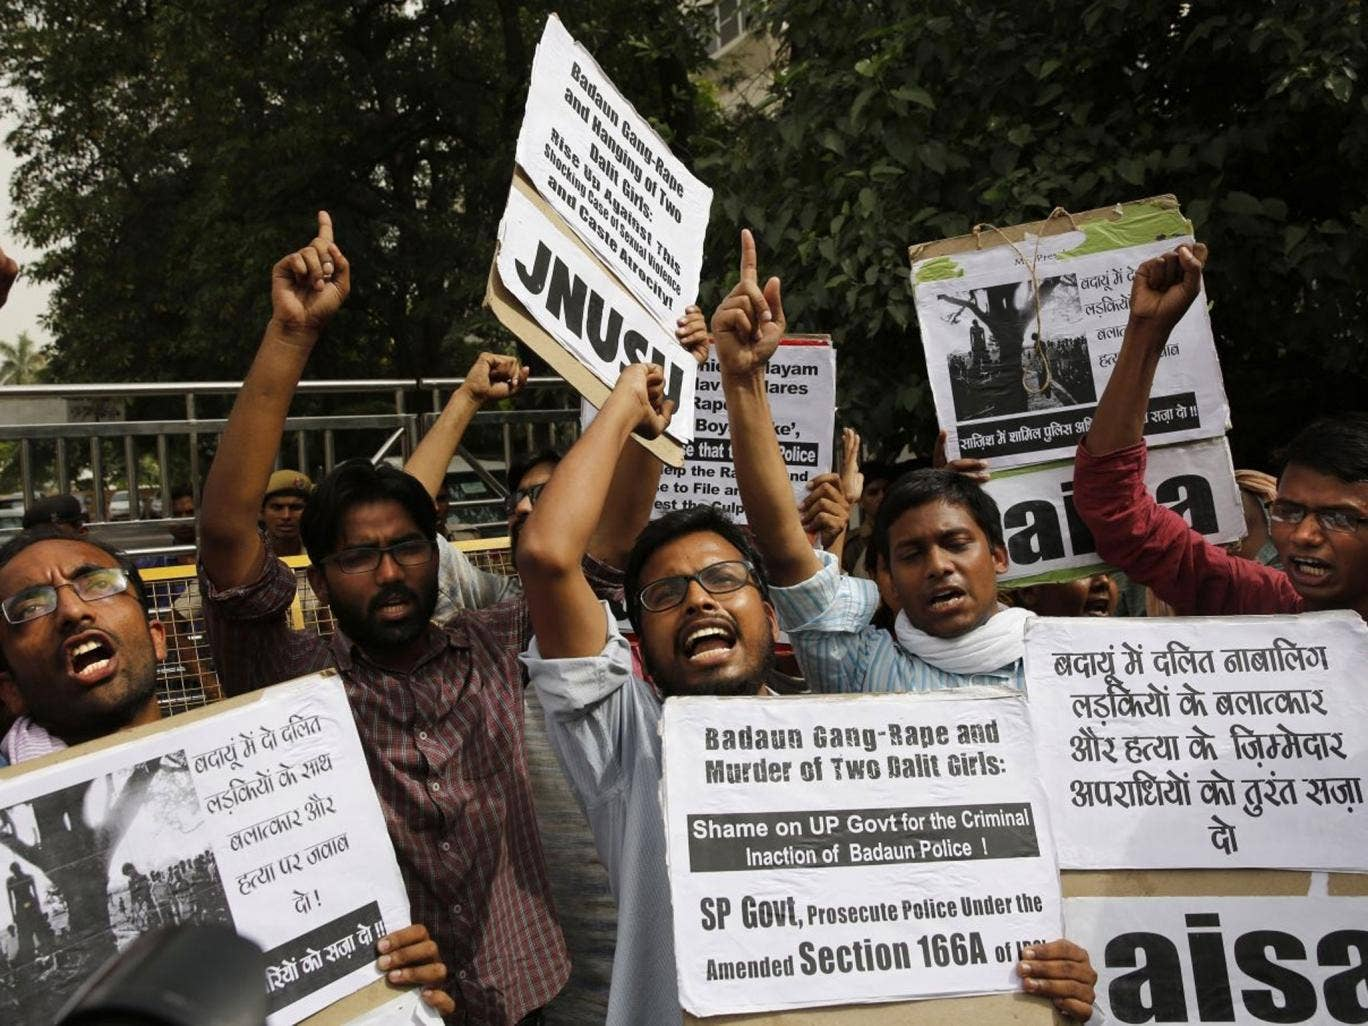 Members of Jawaharlal Nehru University Students Union shout slogans during a protest against a gang rape of two teenage girls in Katra village, outside the Uttar Pradesh state house, in New Delhi, India, Friday, May 30, 2014. A top government official sai